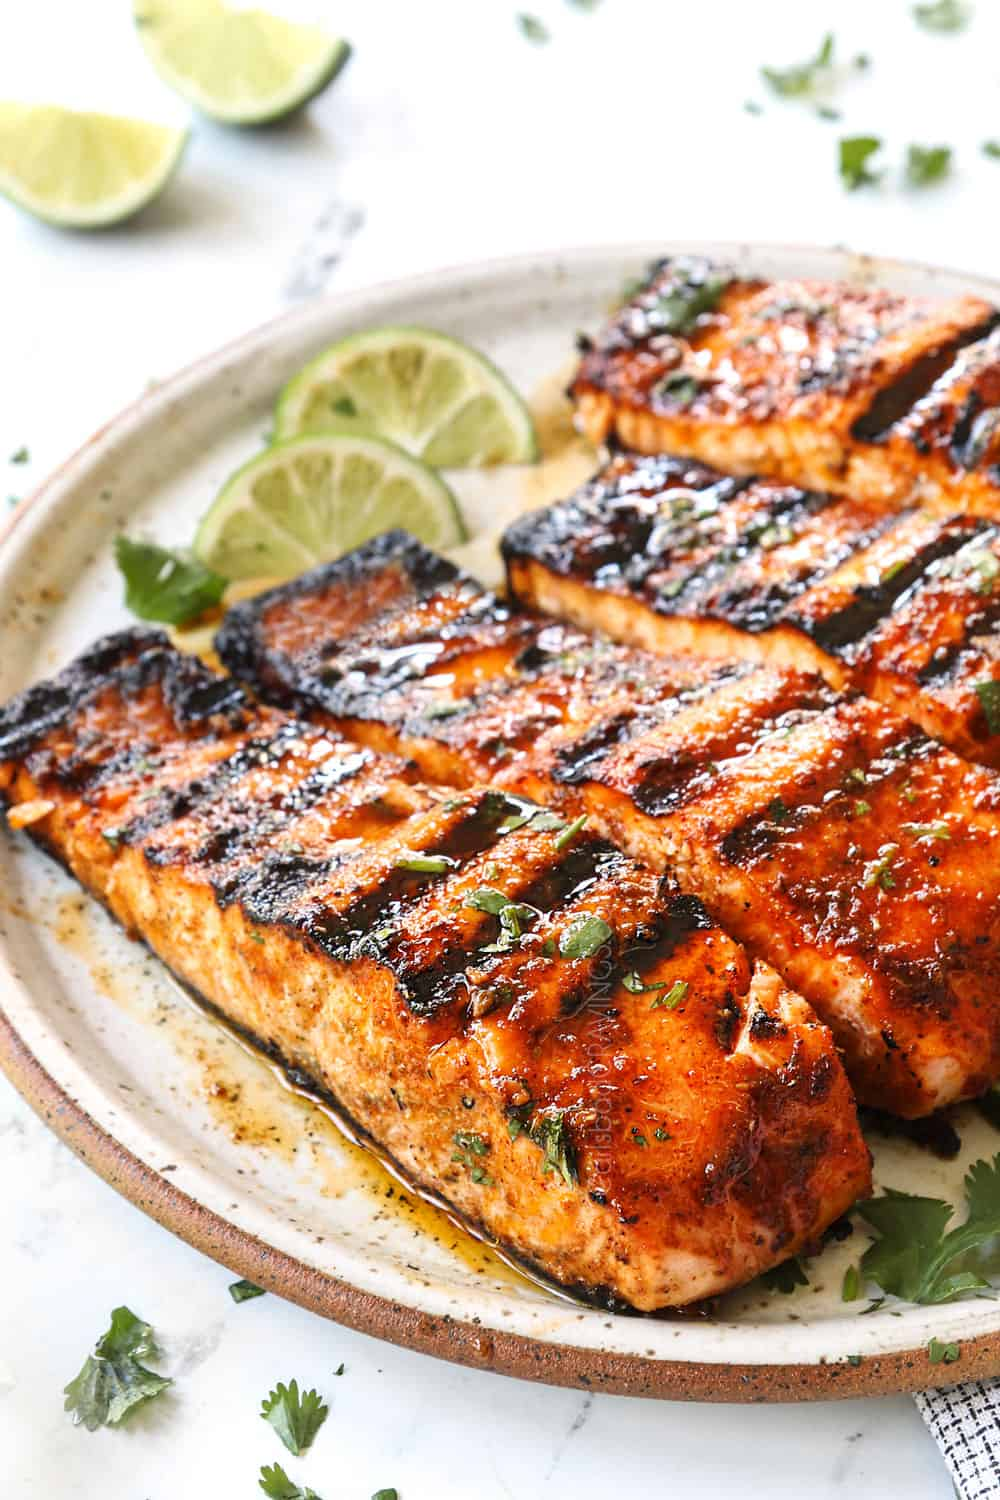 up close of a fillet of grilled salmon showing how juicy it is